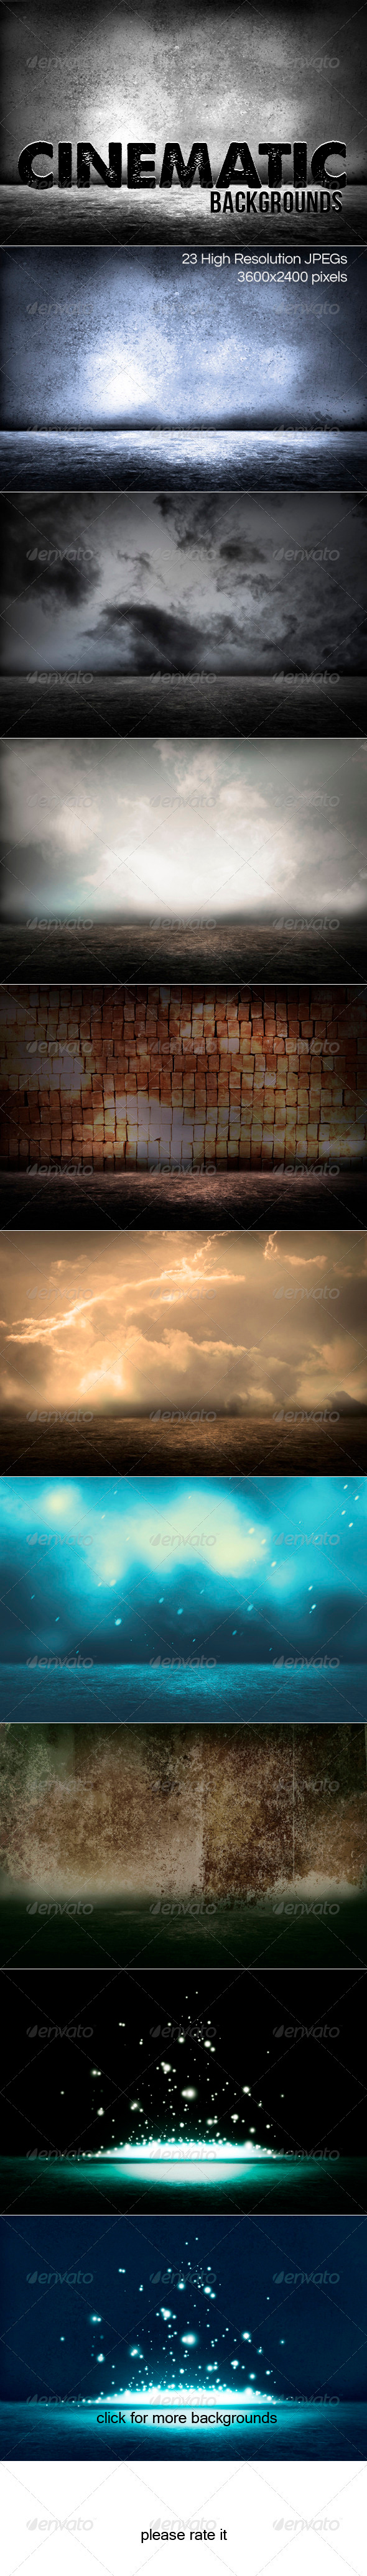 GraphicRiver Cinematic Backgrounds 3951771